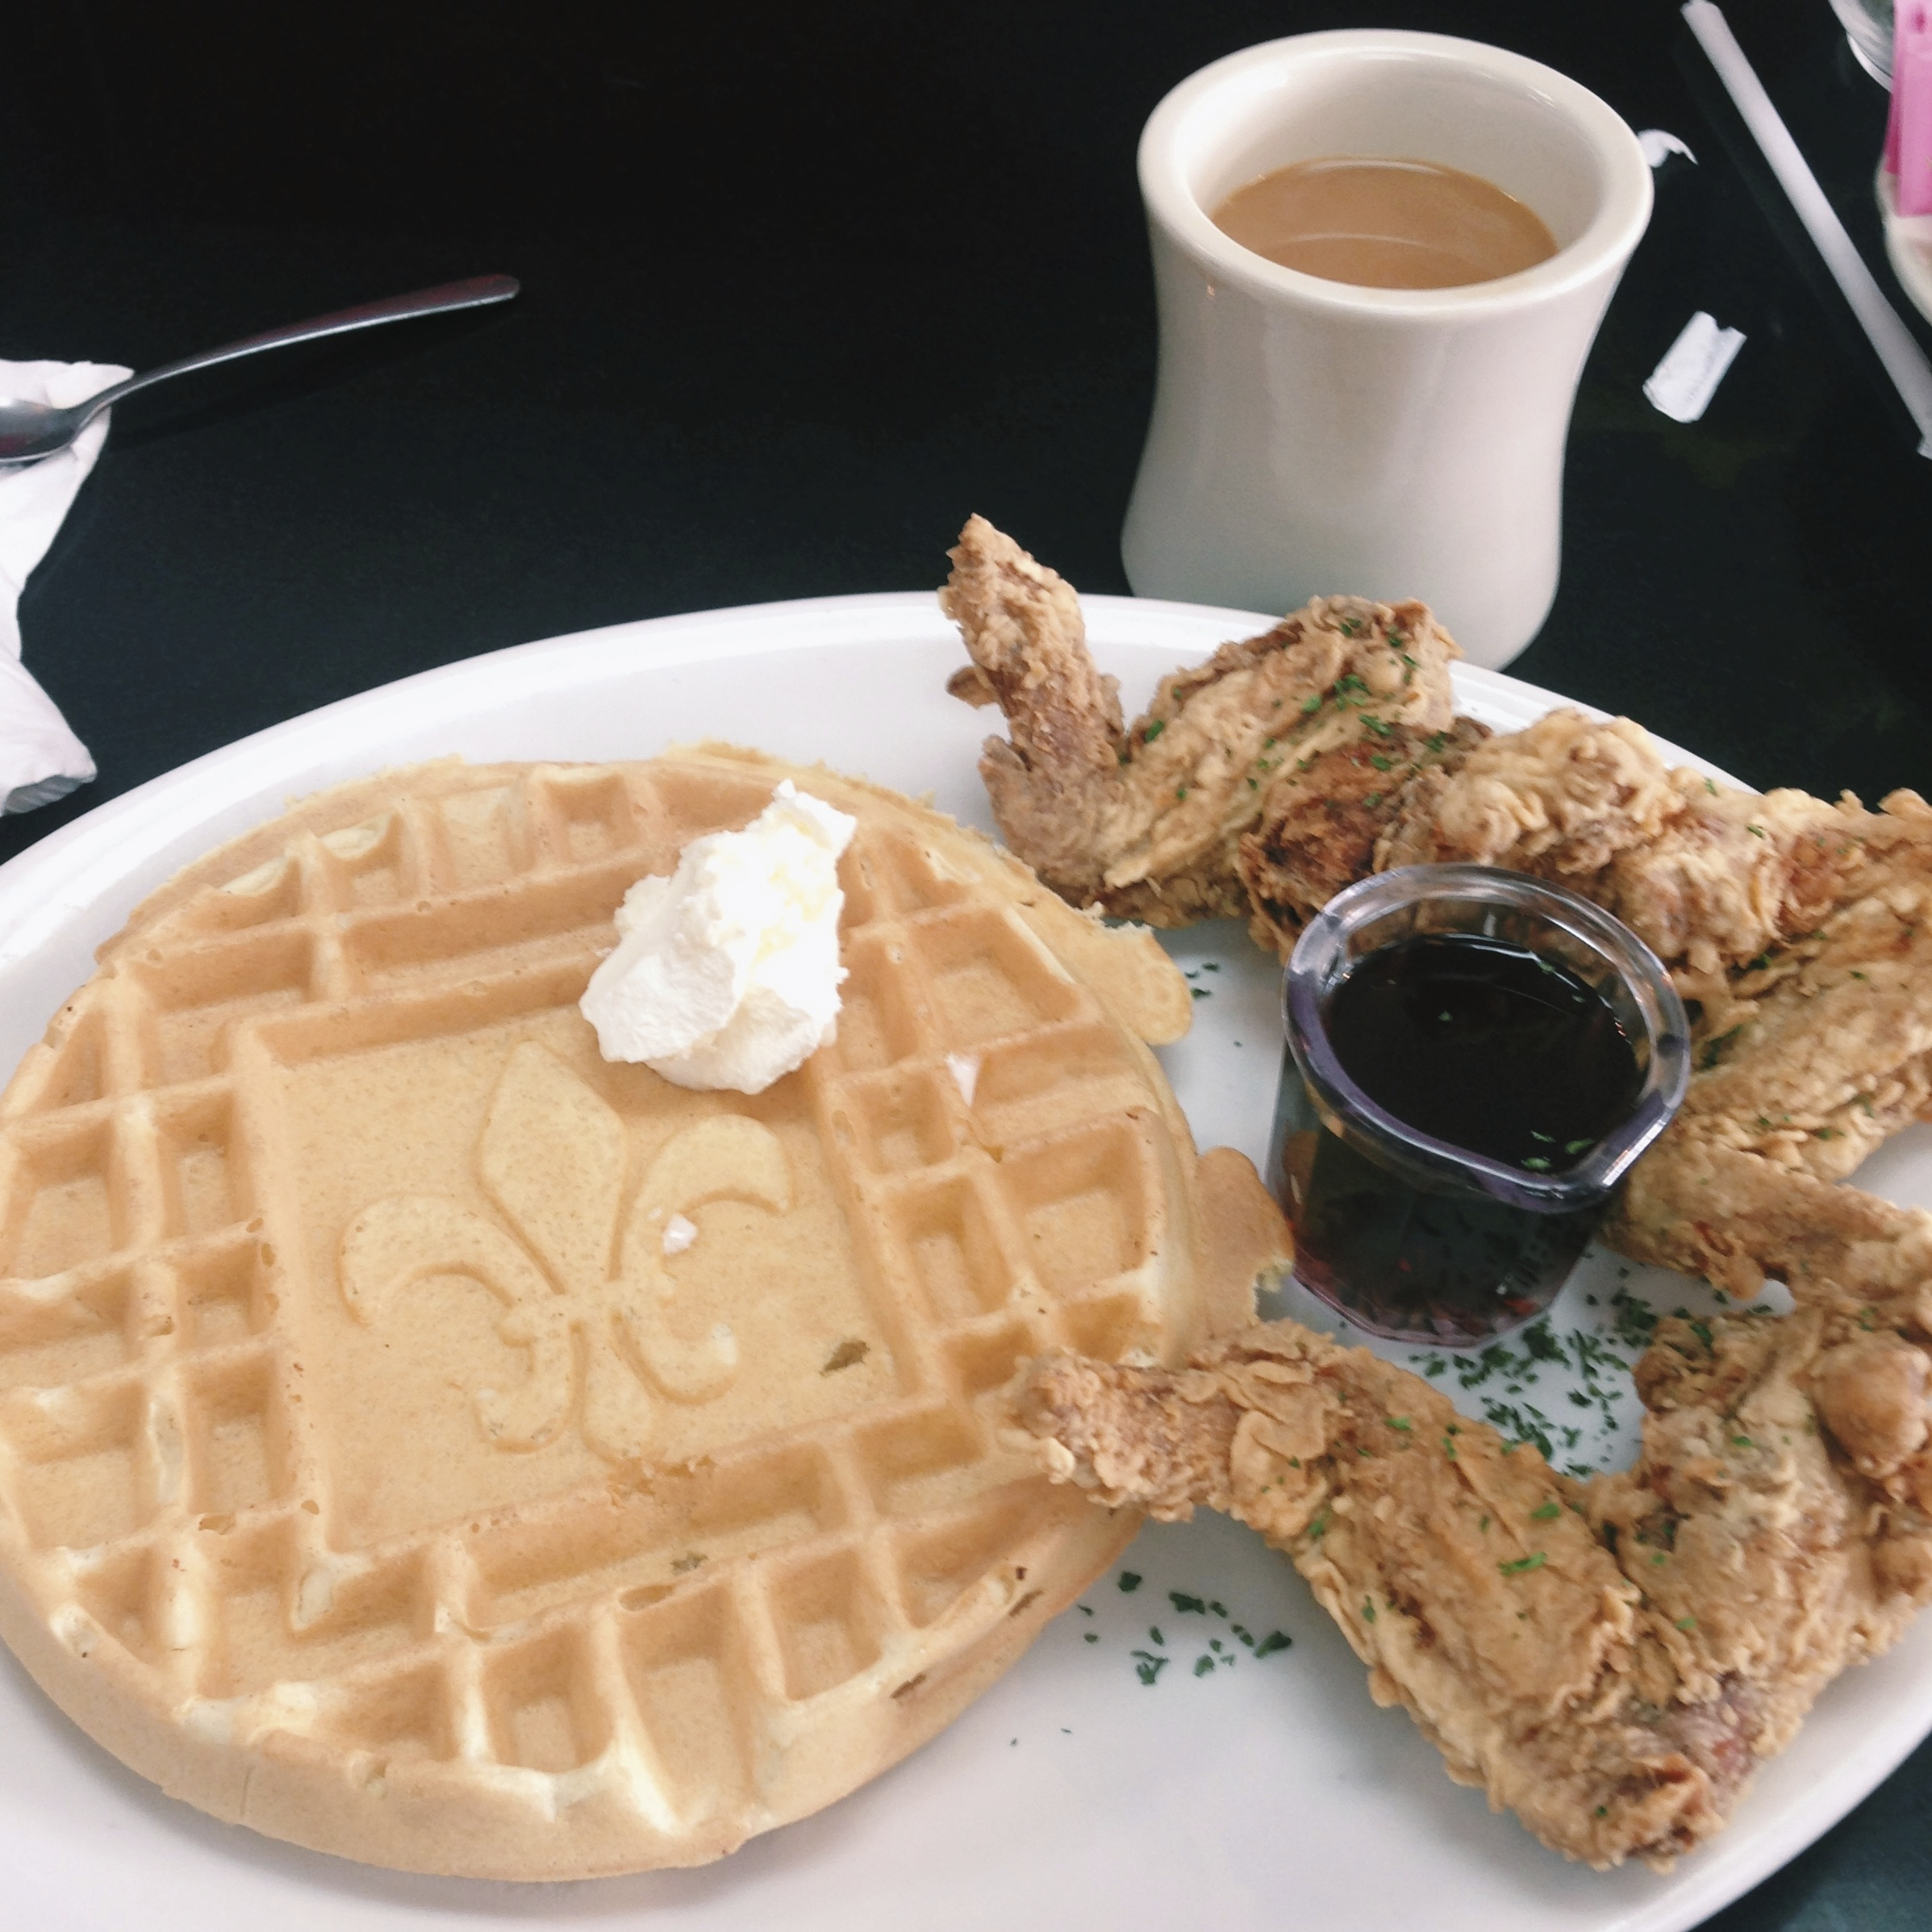 Big Momma's Chicken and Waffles.  We both gained several pounds that morning. Worth it!